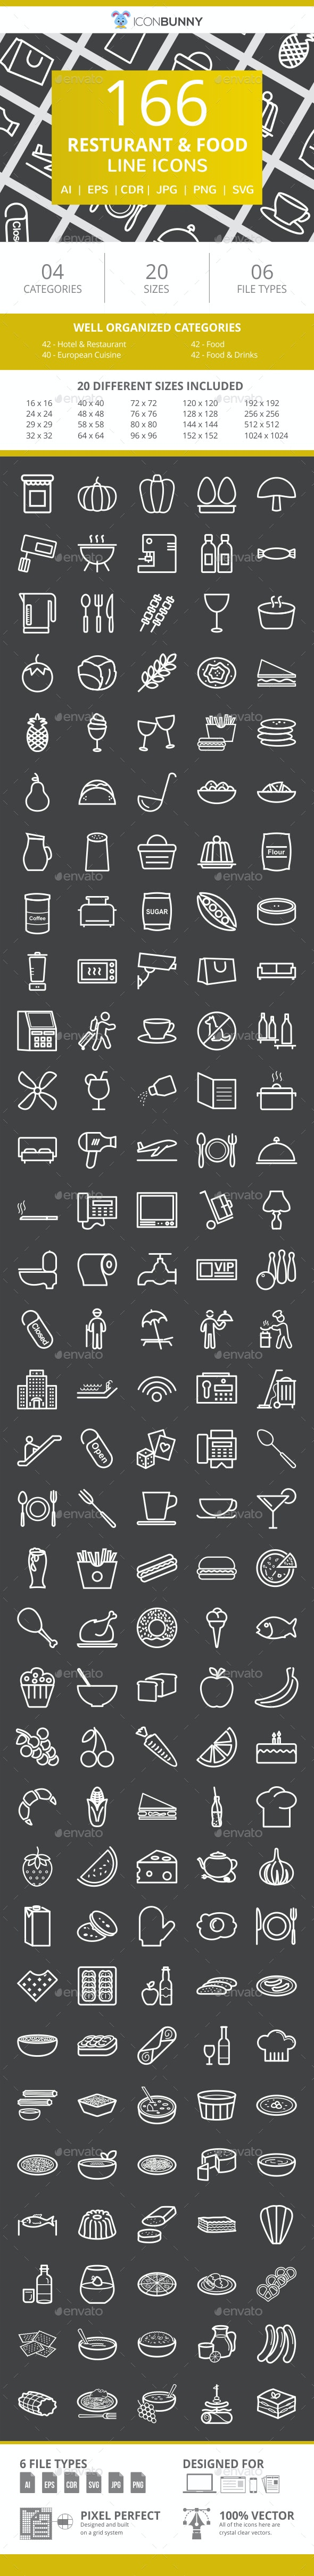 166 Restaurant & Food Line Inverted Icons - Icons